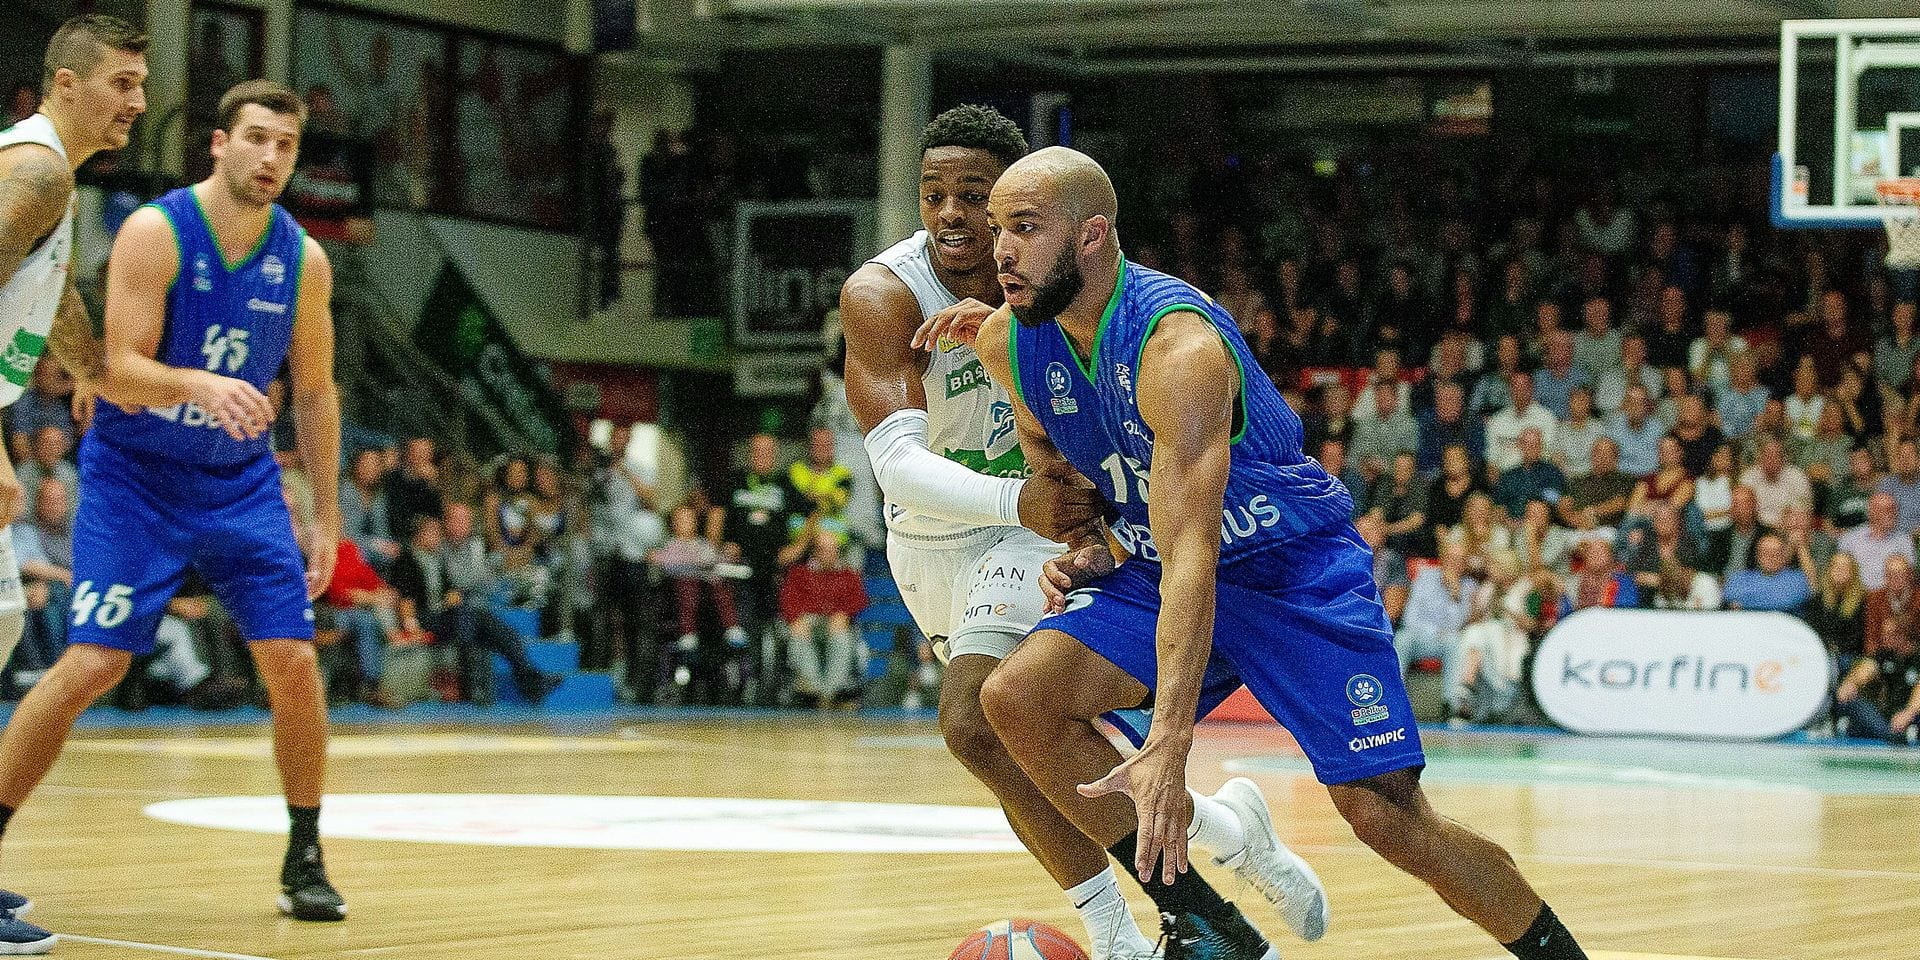 Mons' Idris Lasisi pictured in action during the basketball match between Okapi Aalstar and Mons-Hainaut, Friday 28 September 2018 in Aalst, the first game of the 'EuroMillions League' Belgian first division. BELGA PHOTO JAMES ARTHUR GEKIERE